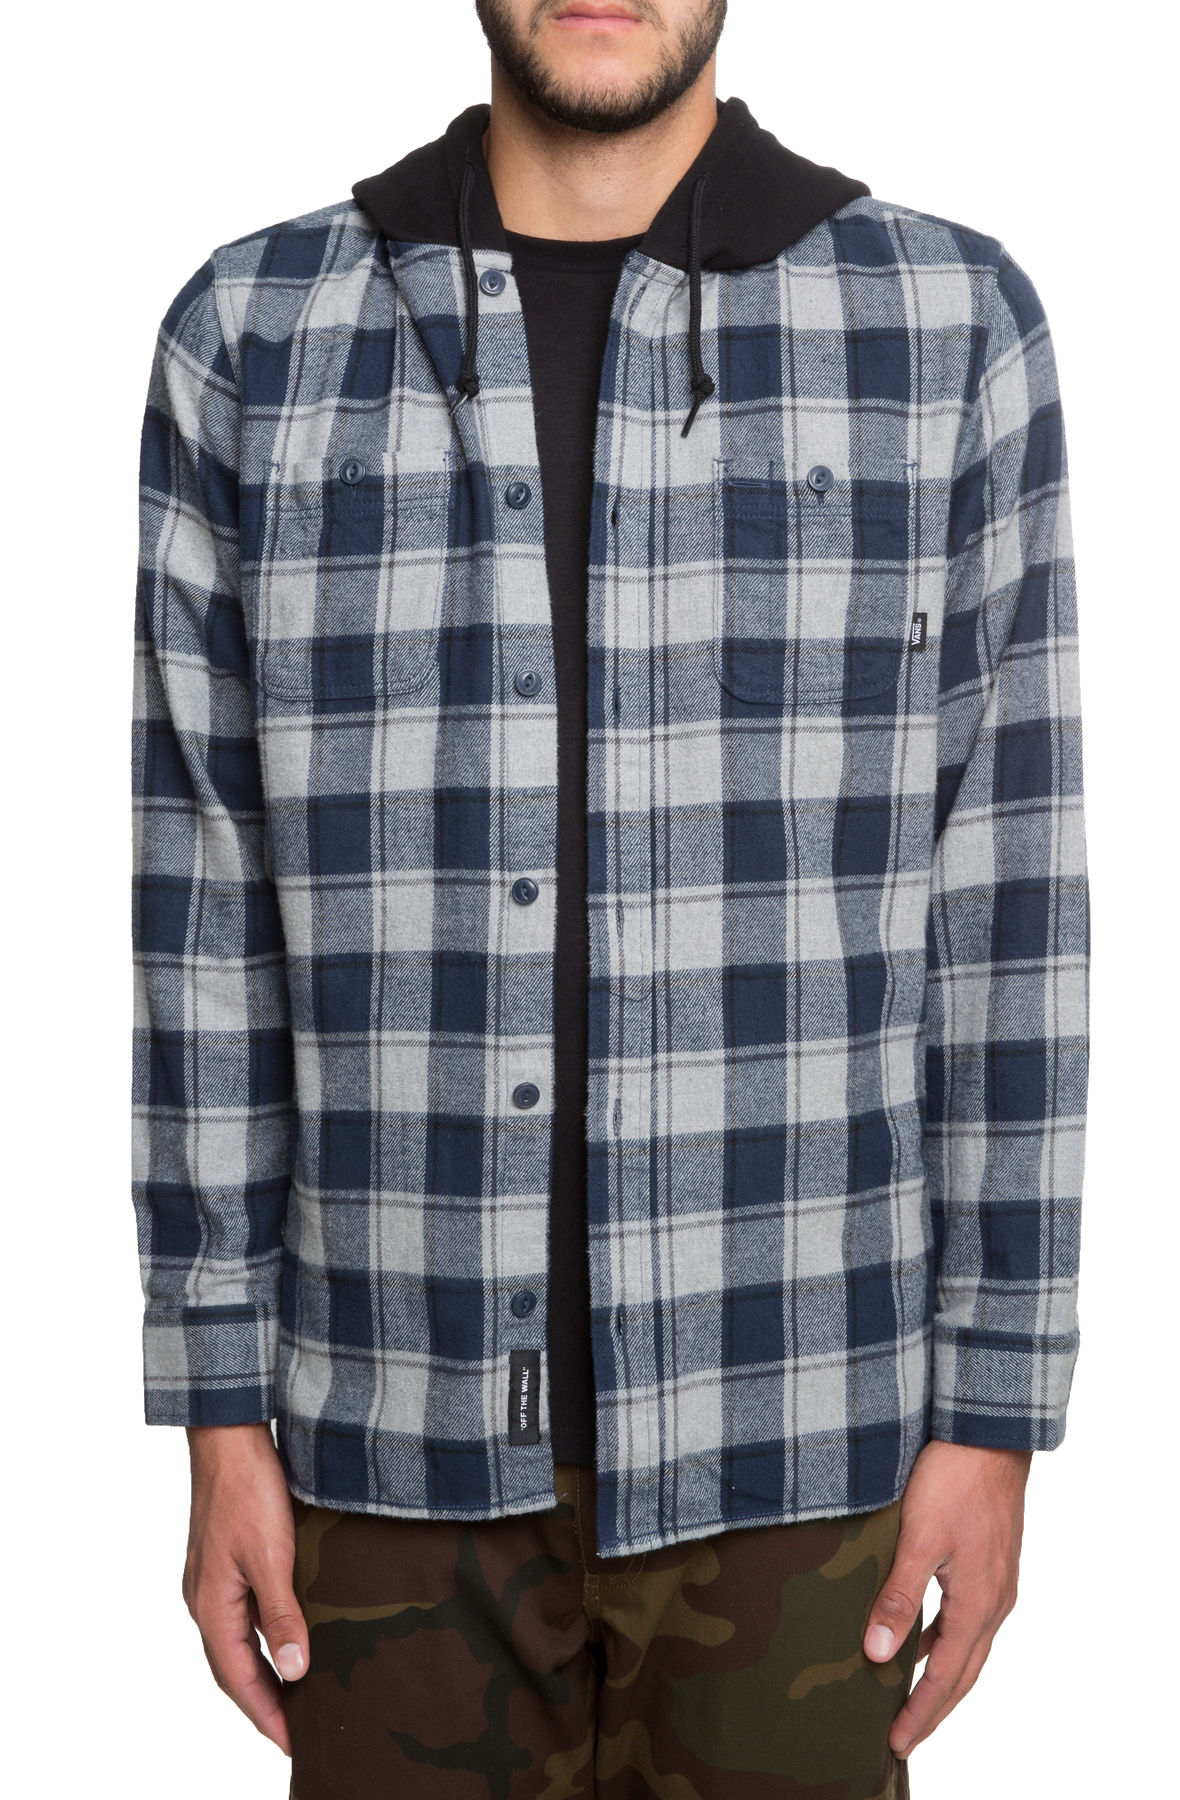 Image of The Lopes Hooded Flannel in Dress Blues and Grey